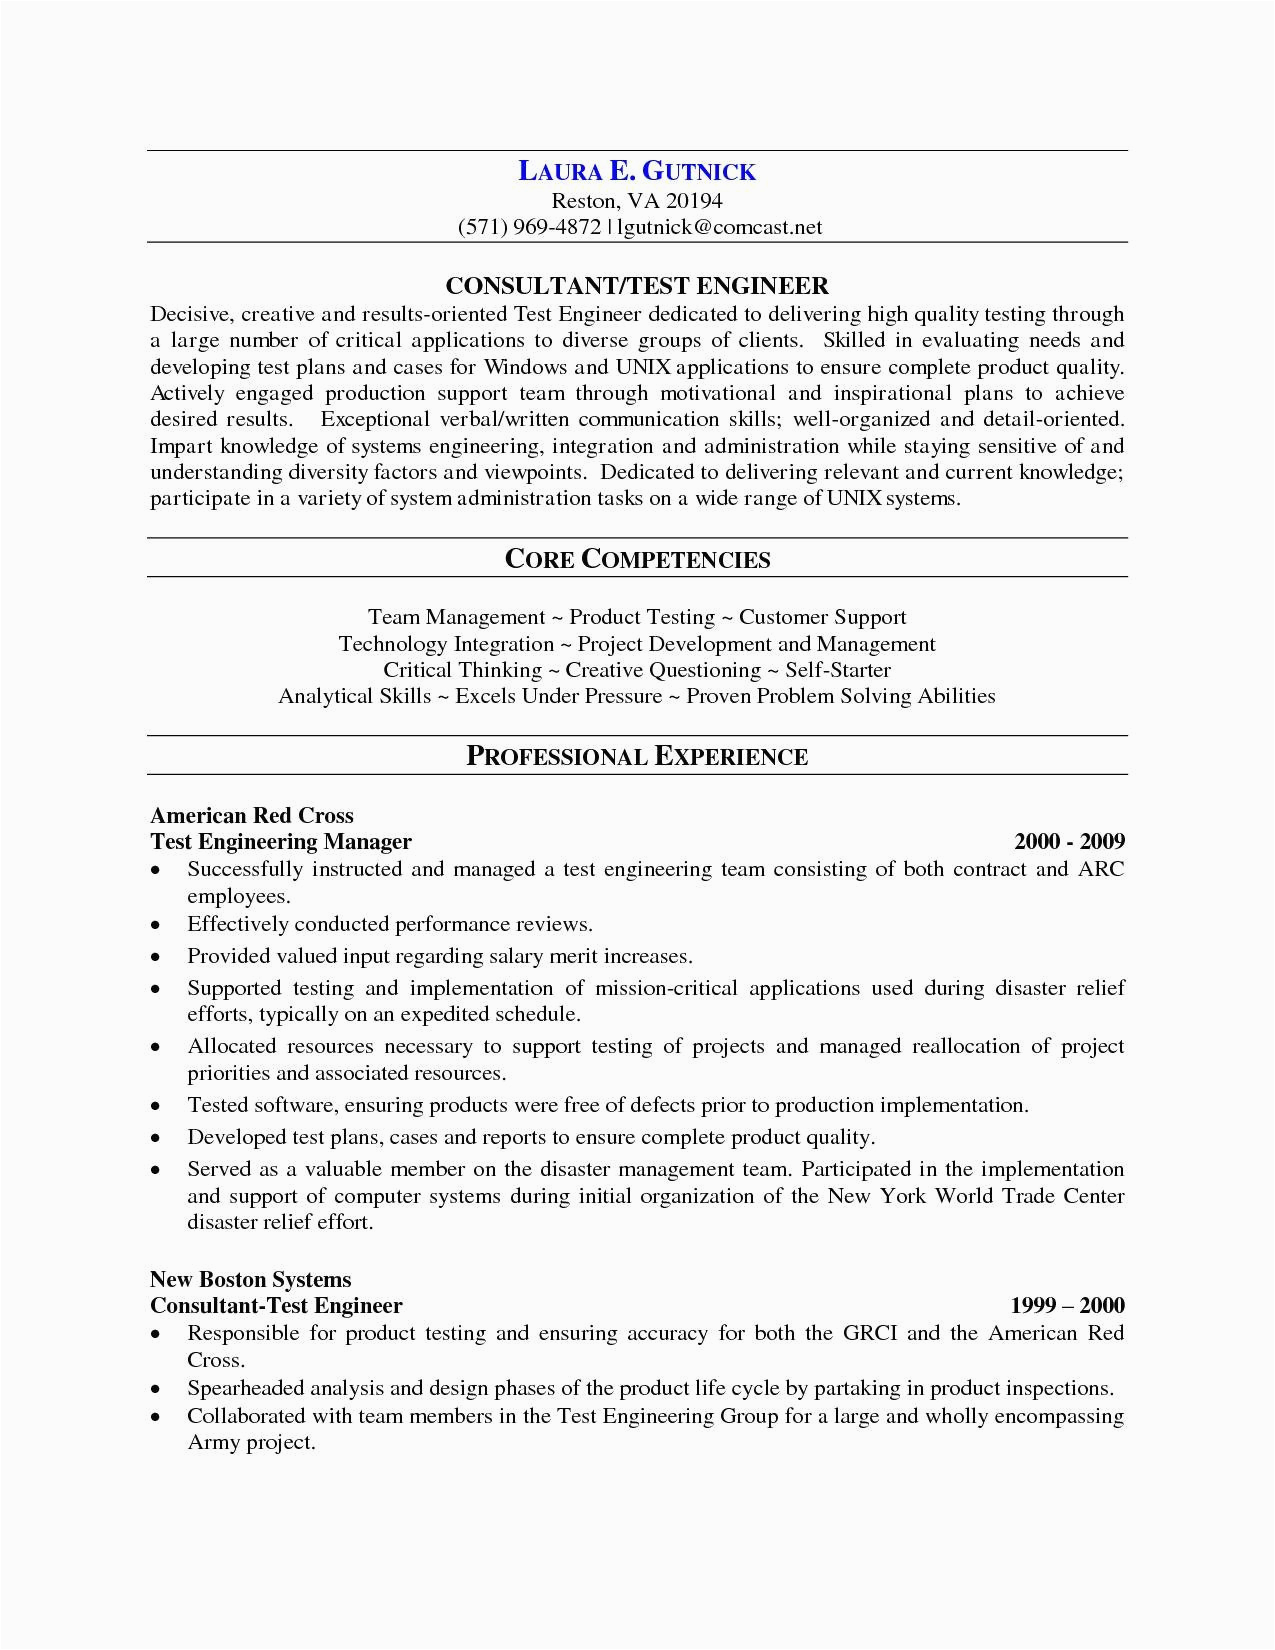 Sample Resume for software Tester 2 Years Experience Sample Resume for software Tester 2 Years Experience